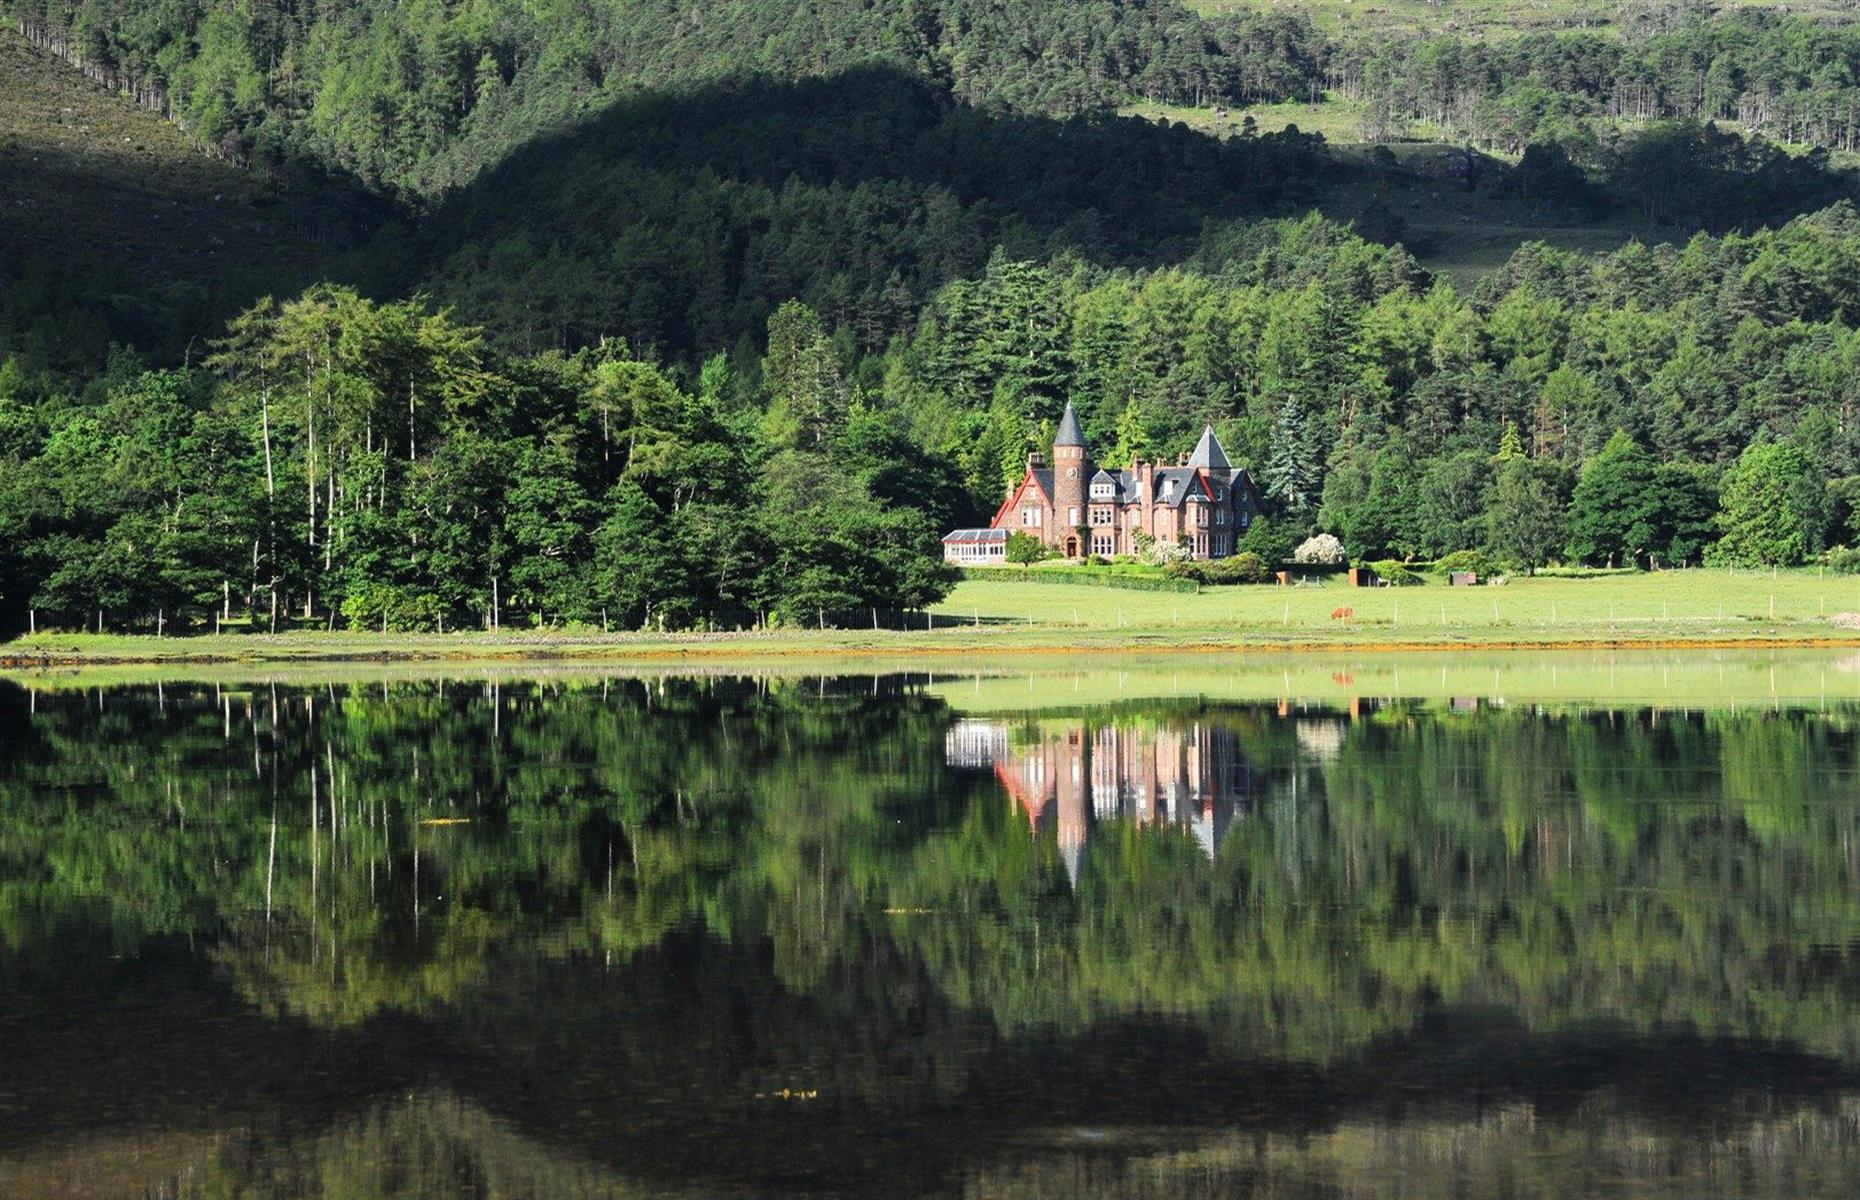 Slide 30 of 32: The grandeur of the Scottish Highlands is on full display at The Torridon on the shores of Loch Torridon. The boutique rooms all look out to the lake or to the 3,461-foot (1,054m) mountain Liathach. There's something for everyone at this hotel, whether that be a reviving outdoor escape or a pampering luxury getaway. Guests can expect some changes, like asingle point for checking in, physical distancing and enhanced cleaning procedures. Now take a look at50 of the most unusual places to stay in the world.